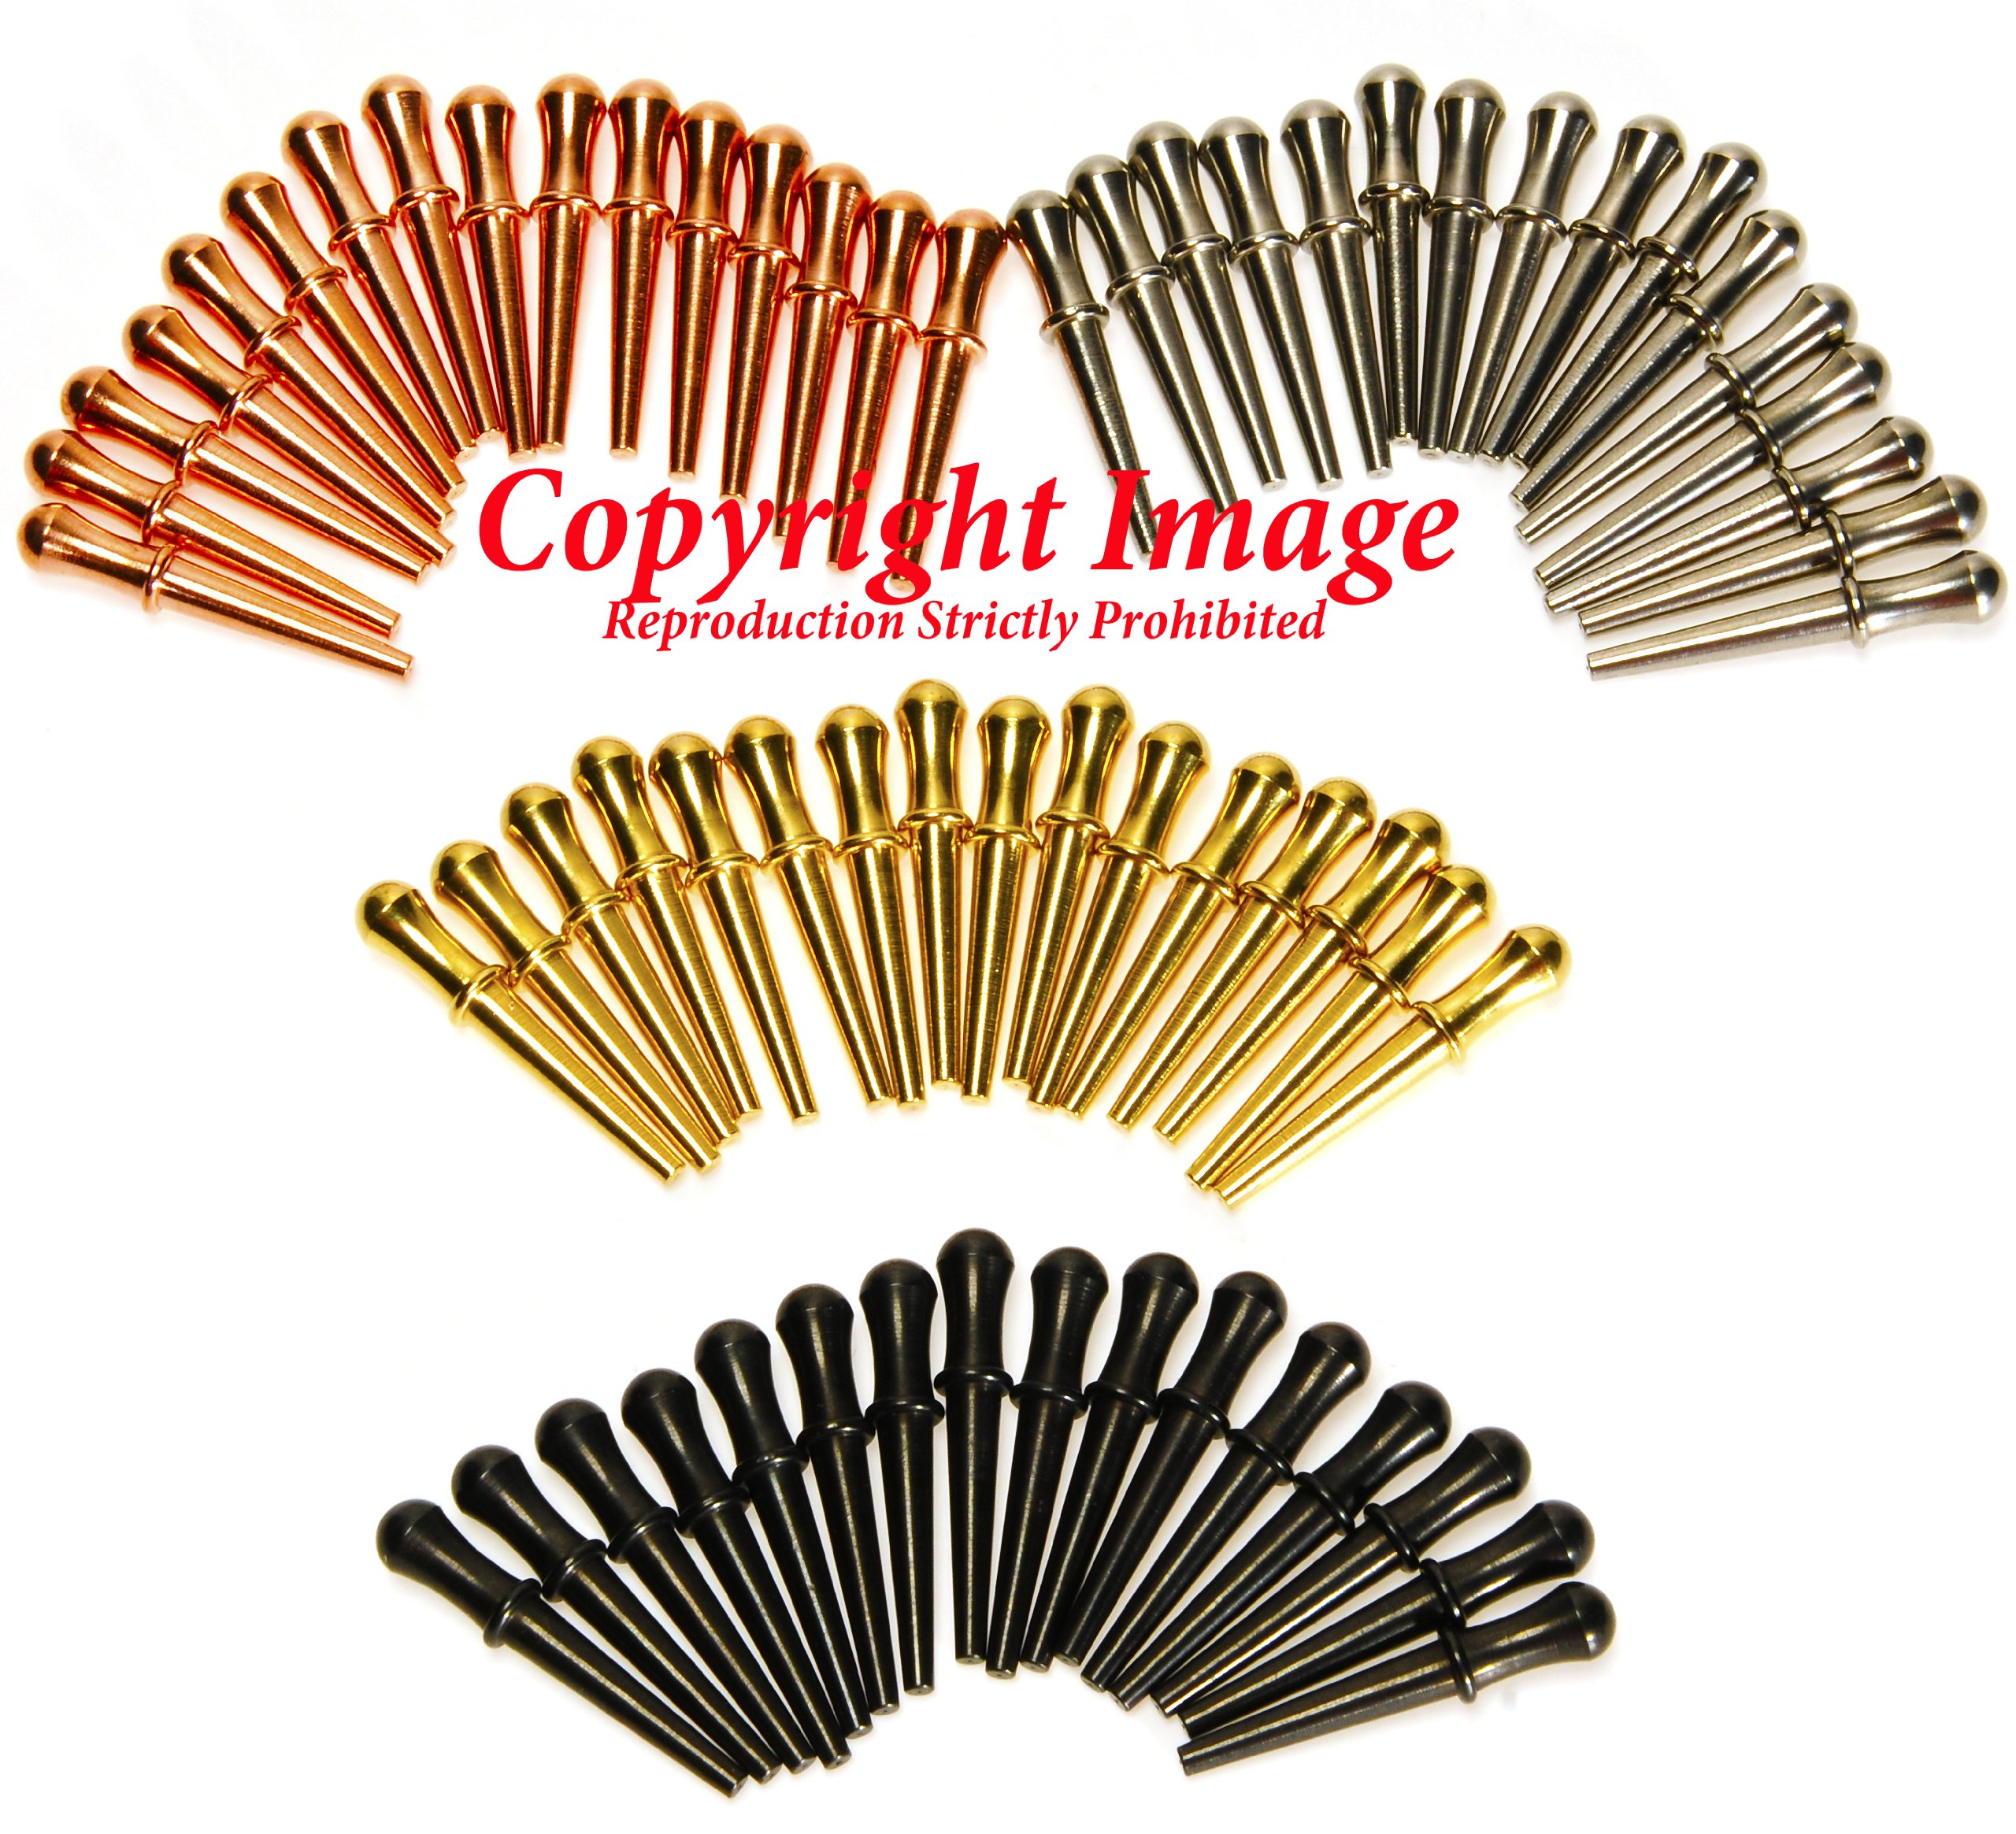 Deluxe Metal Cribbage Pegs _ Friends and Family Pack _ Bundle of 60 pegs